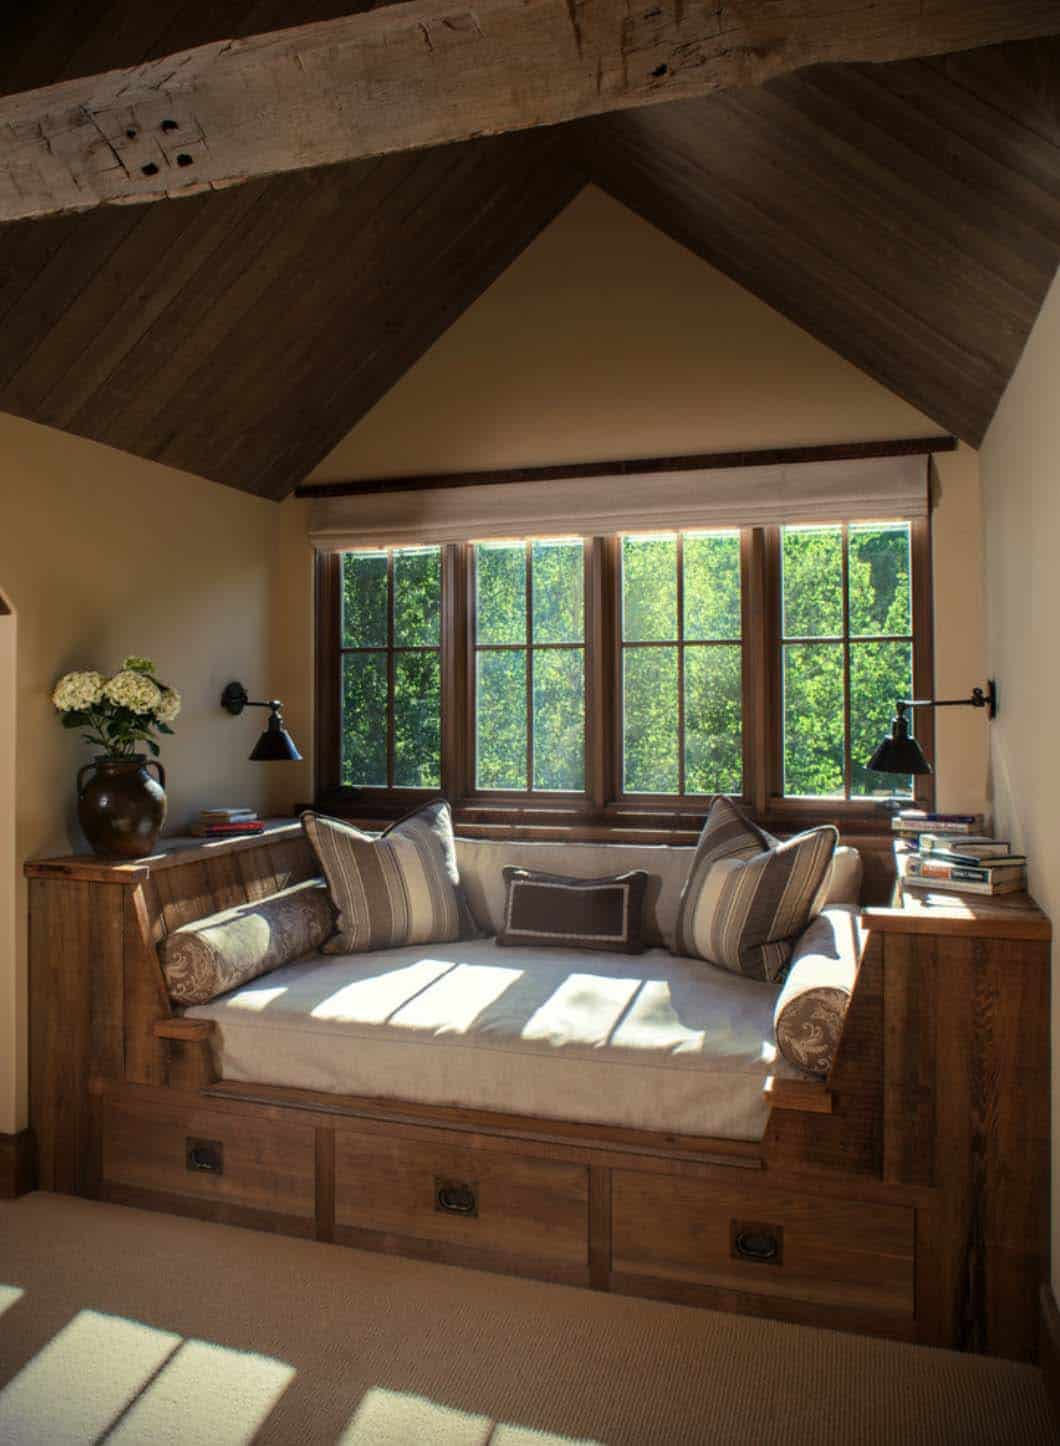 Cozy Reading Nooks For Lounging-06-1 Kindesign